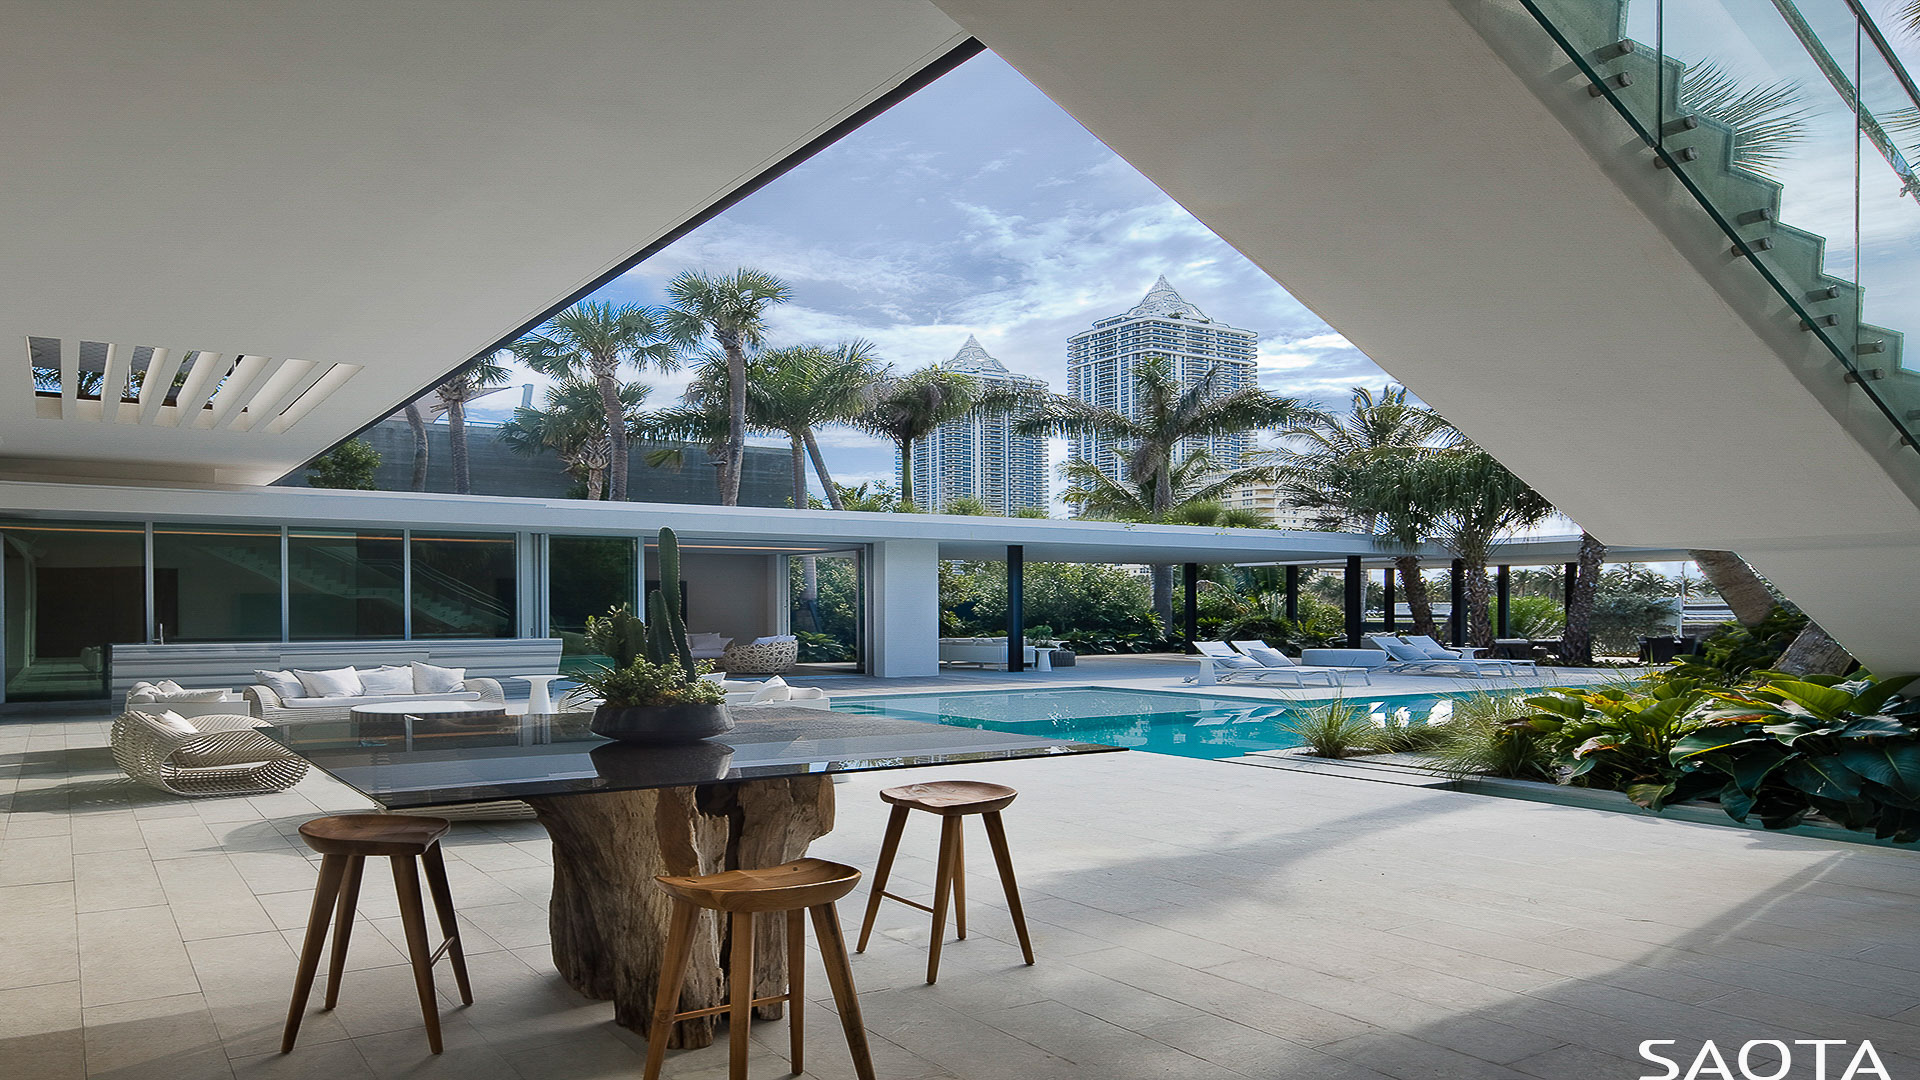 View from inside the Miami house